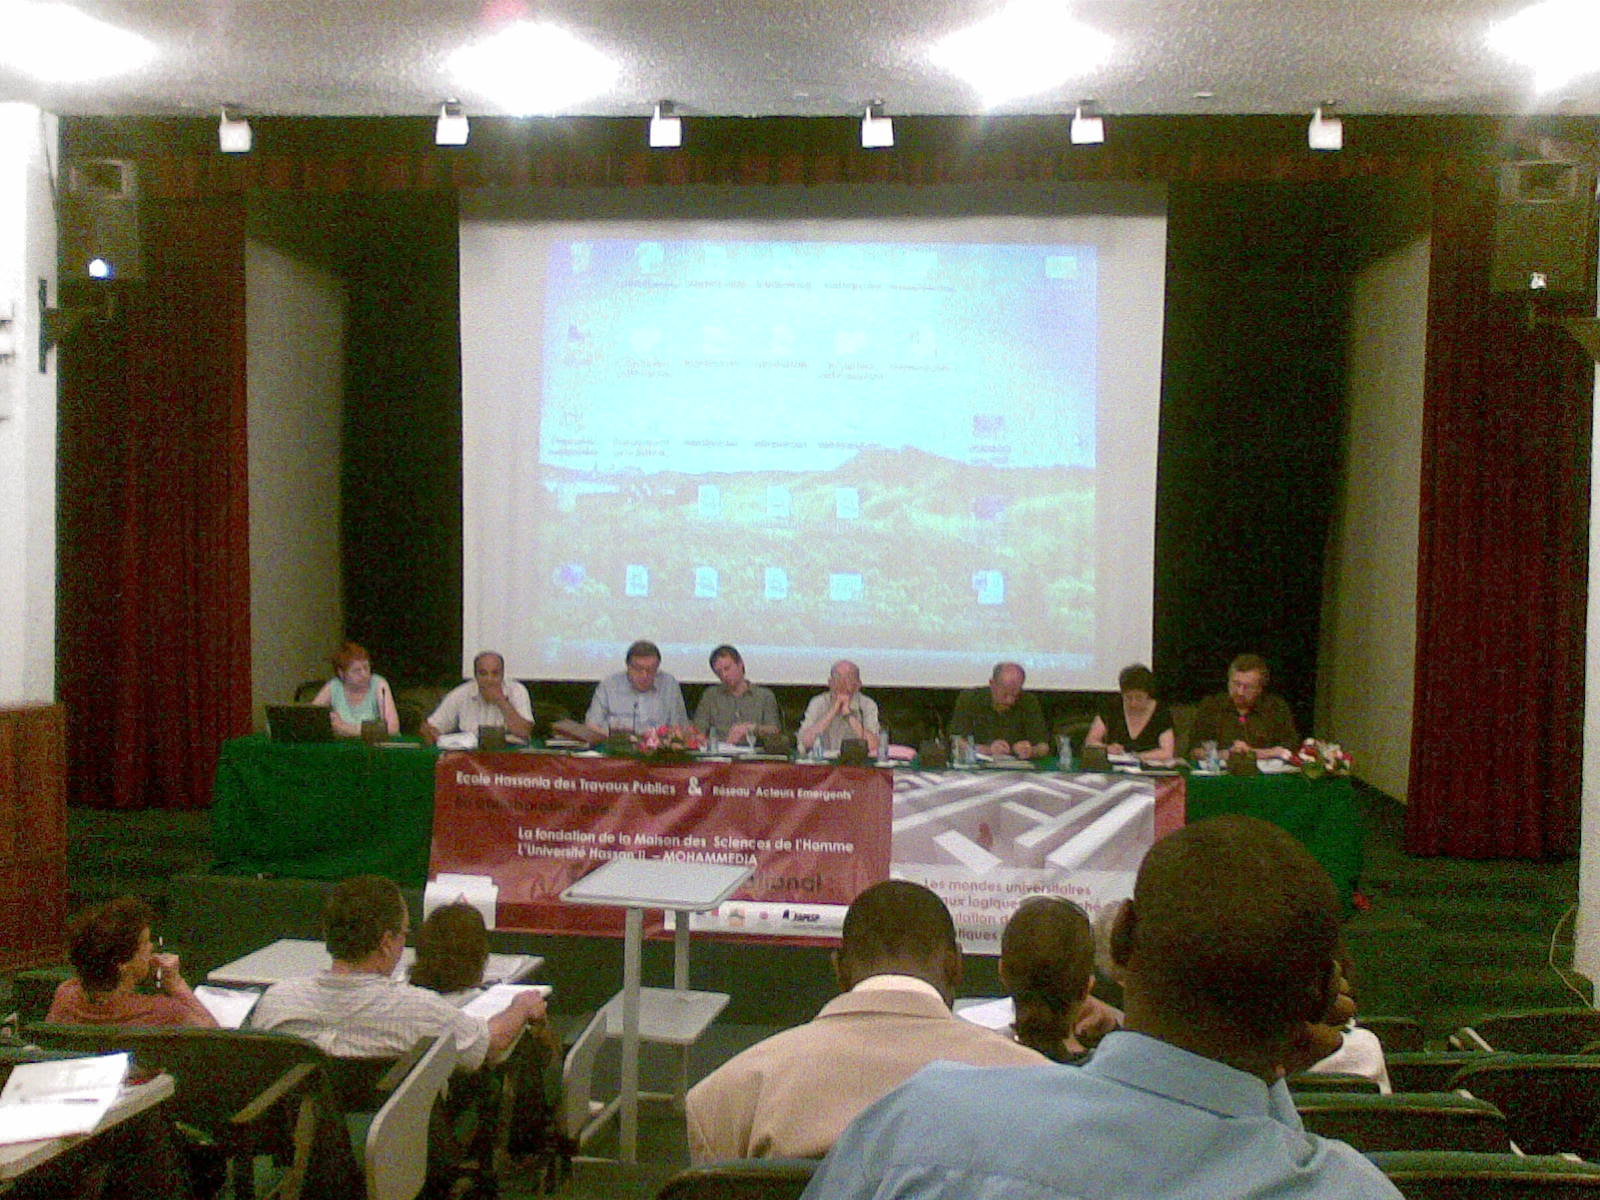 Colloque RAE Casablanca juin09 7